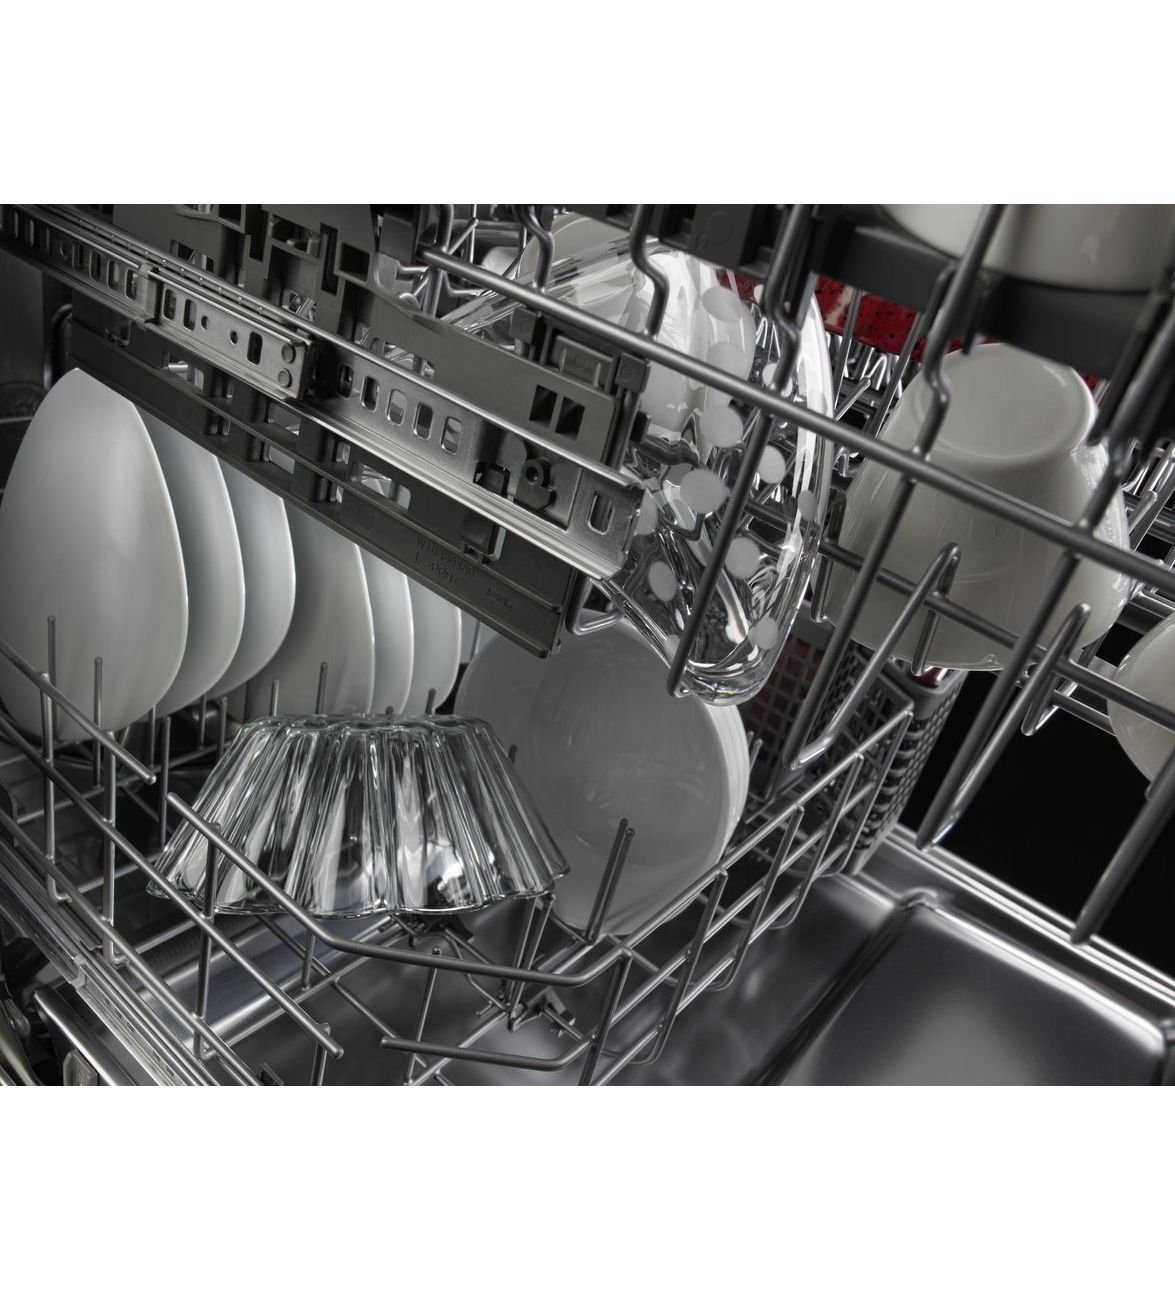 KITCHENAID Dishwasher Review U2013 Racks And Trays